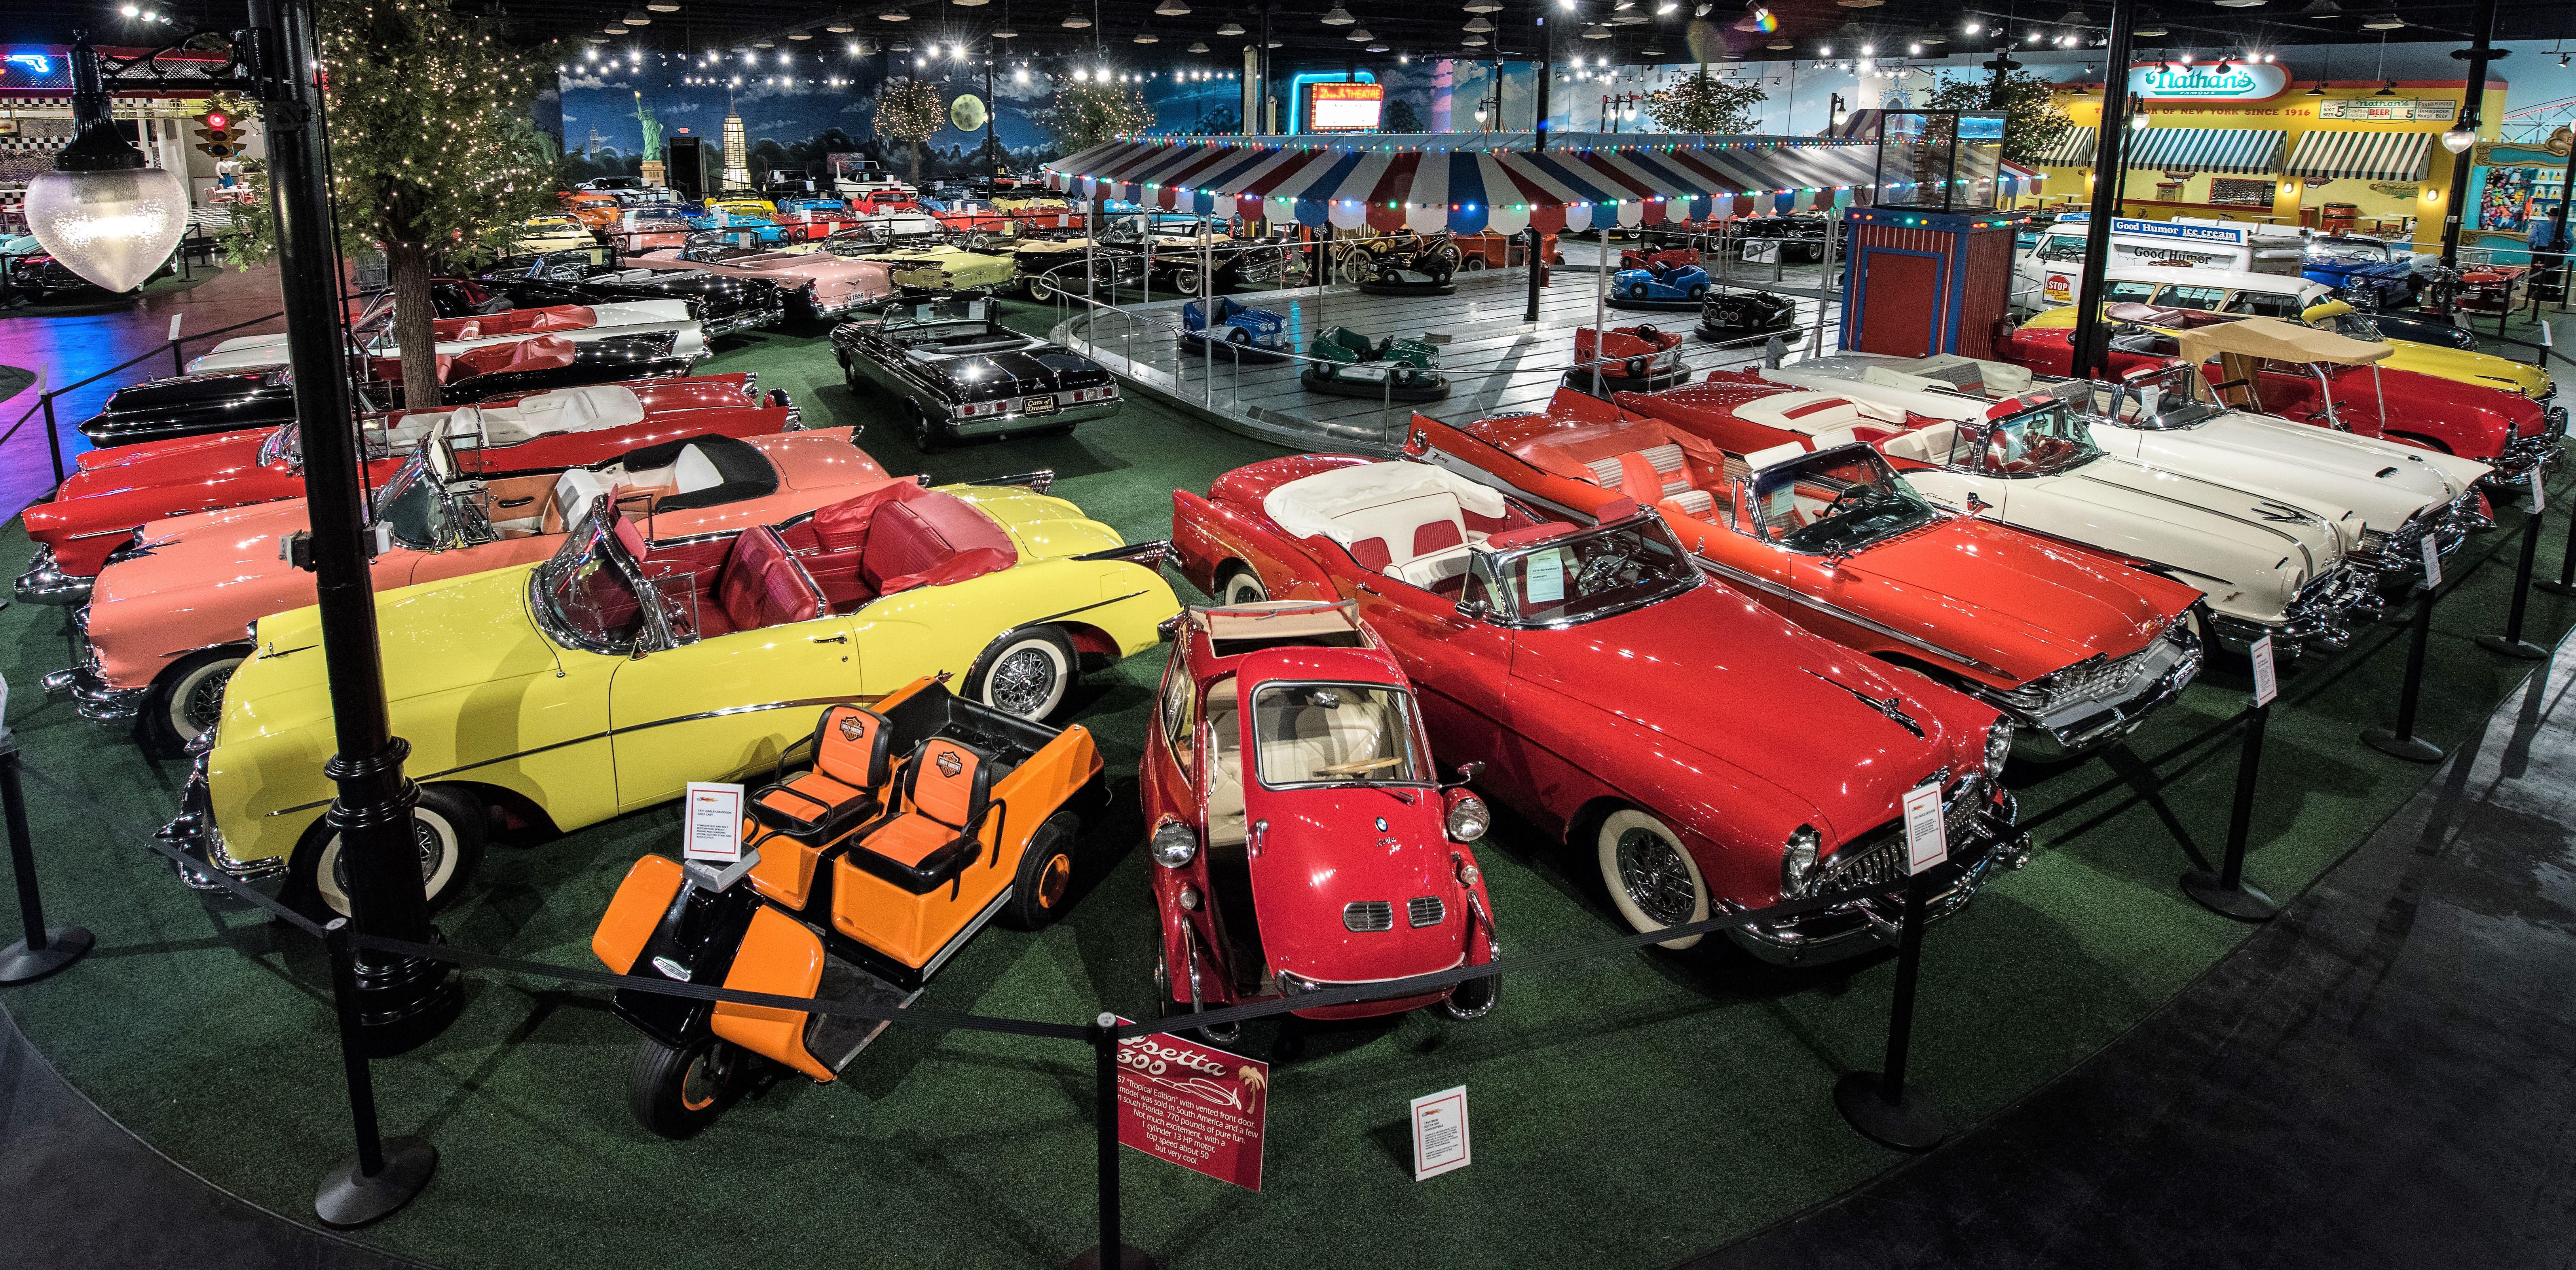 Barrett-Jackson, 'Dream Cars' from Staluppi collection to be auctioned by Barrett-Jackson, ClassicCars.com Journal